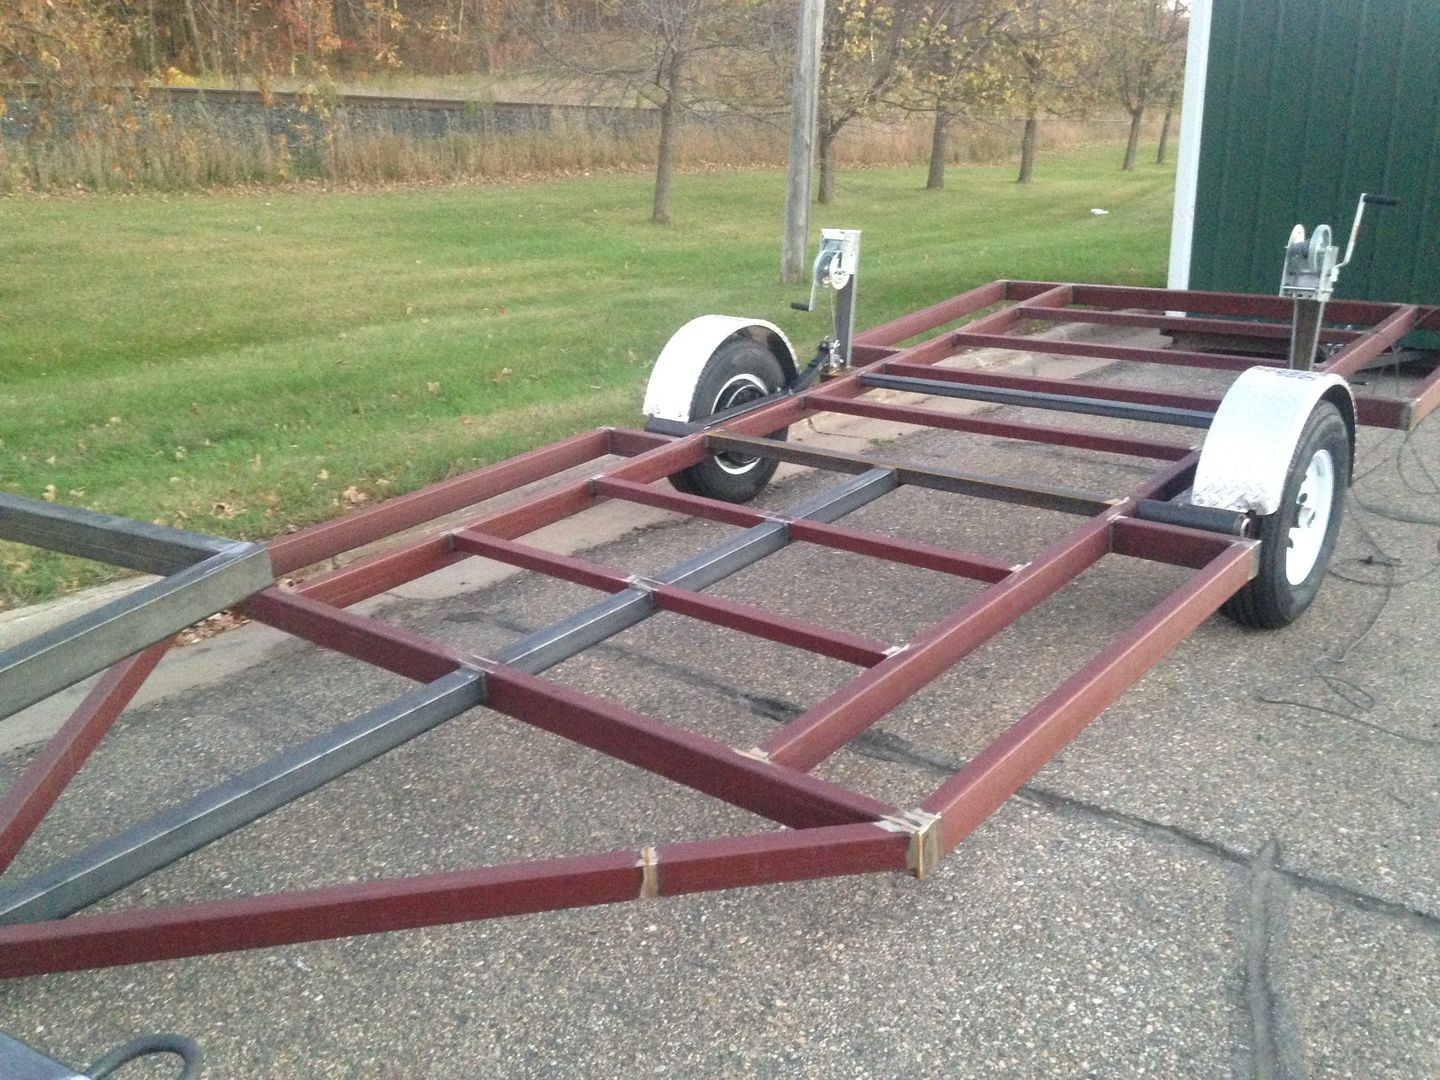 Miltona Blacksmith Trailers in 2019 | Trailer build, Ice ... on movable ice house designs, portable fish house designs, ice house axle plans, ice fishing house designs, ice house ideas, ice shack designs,